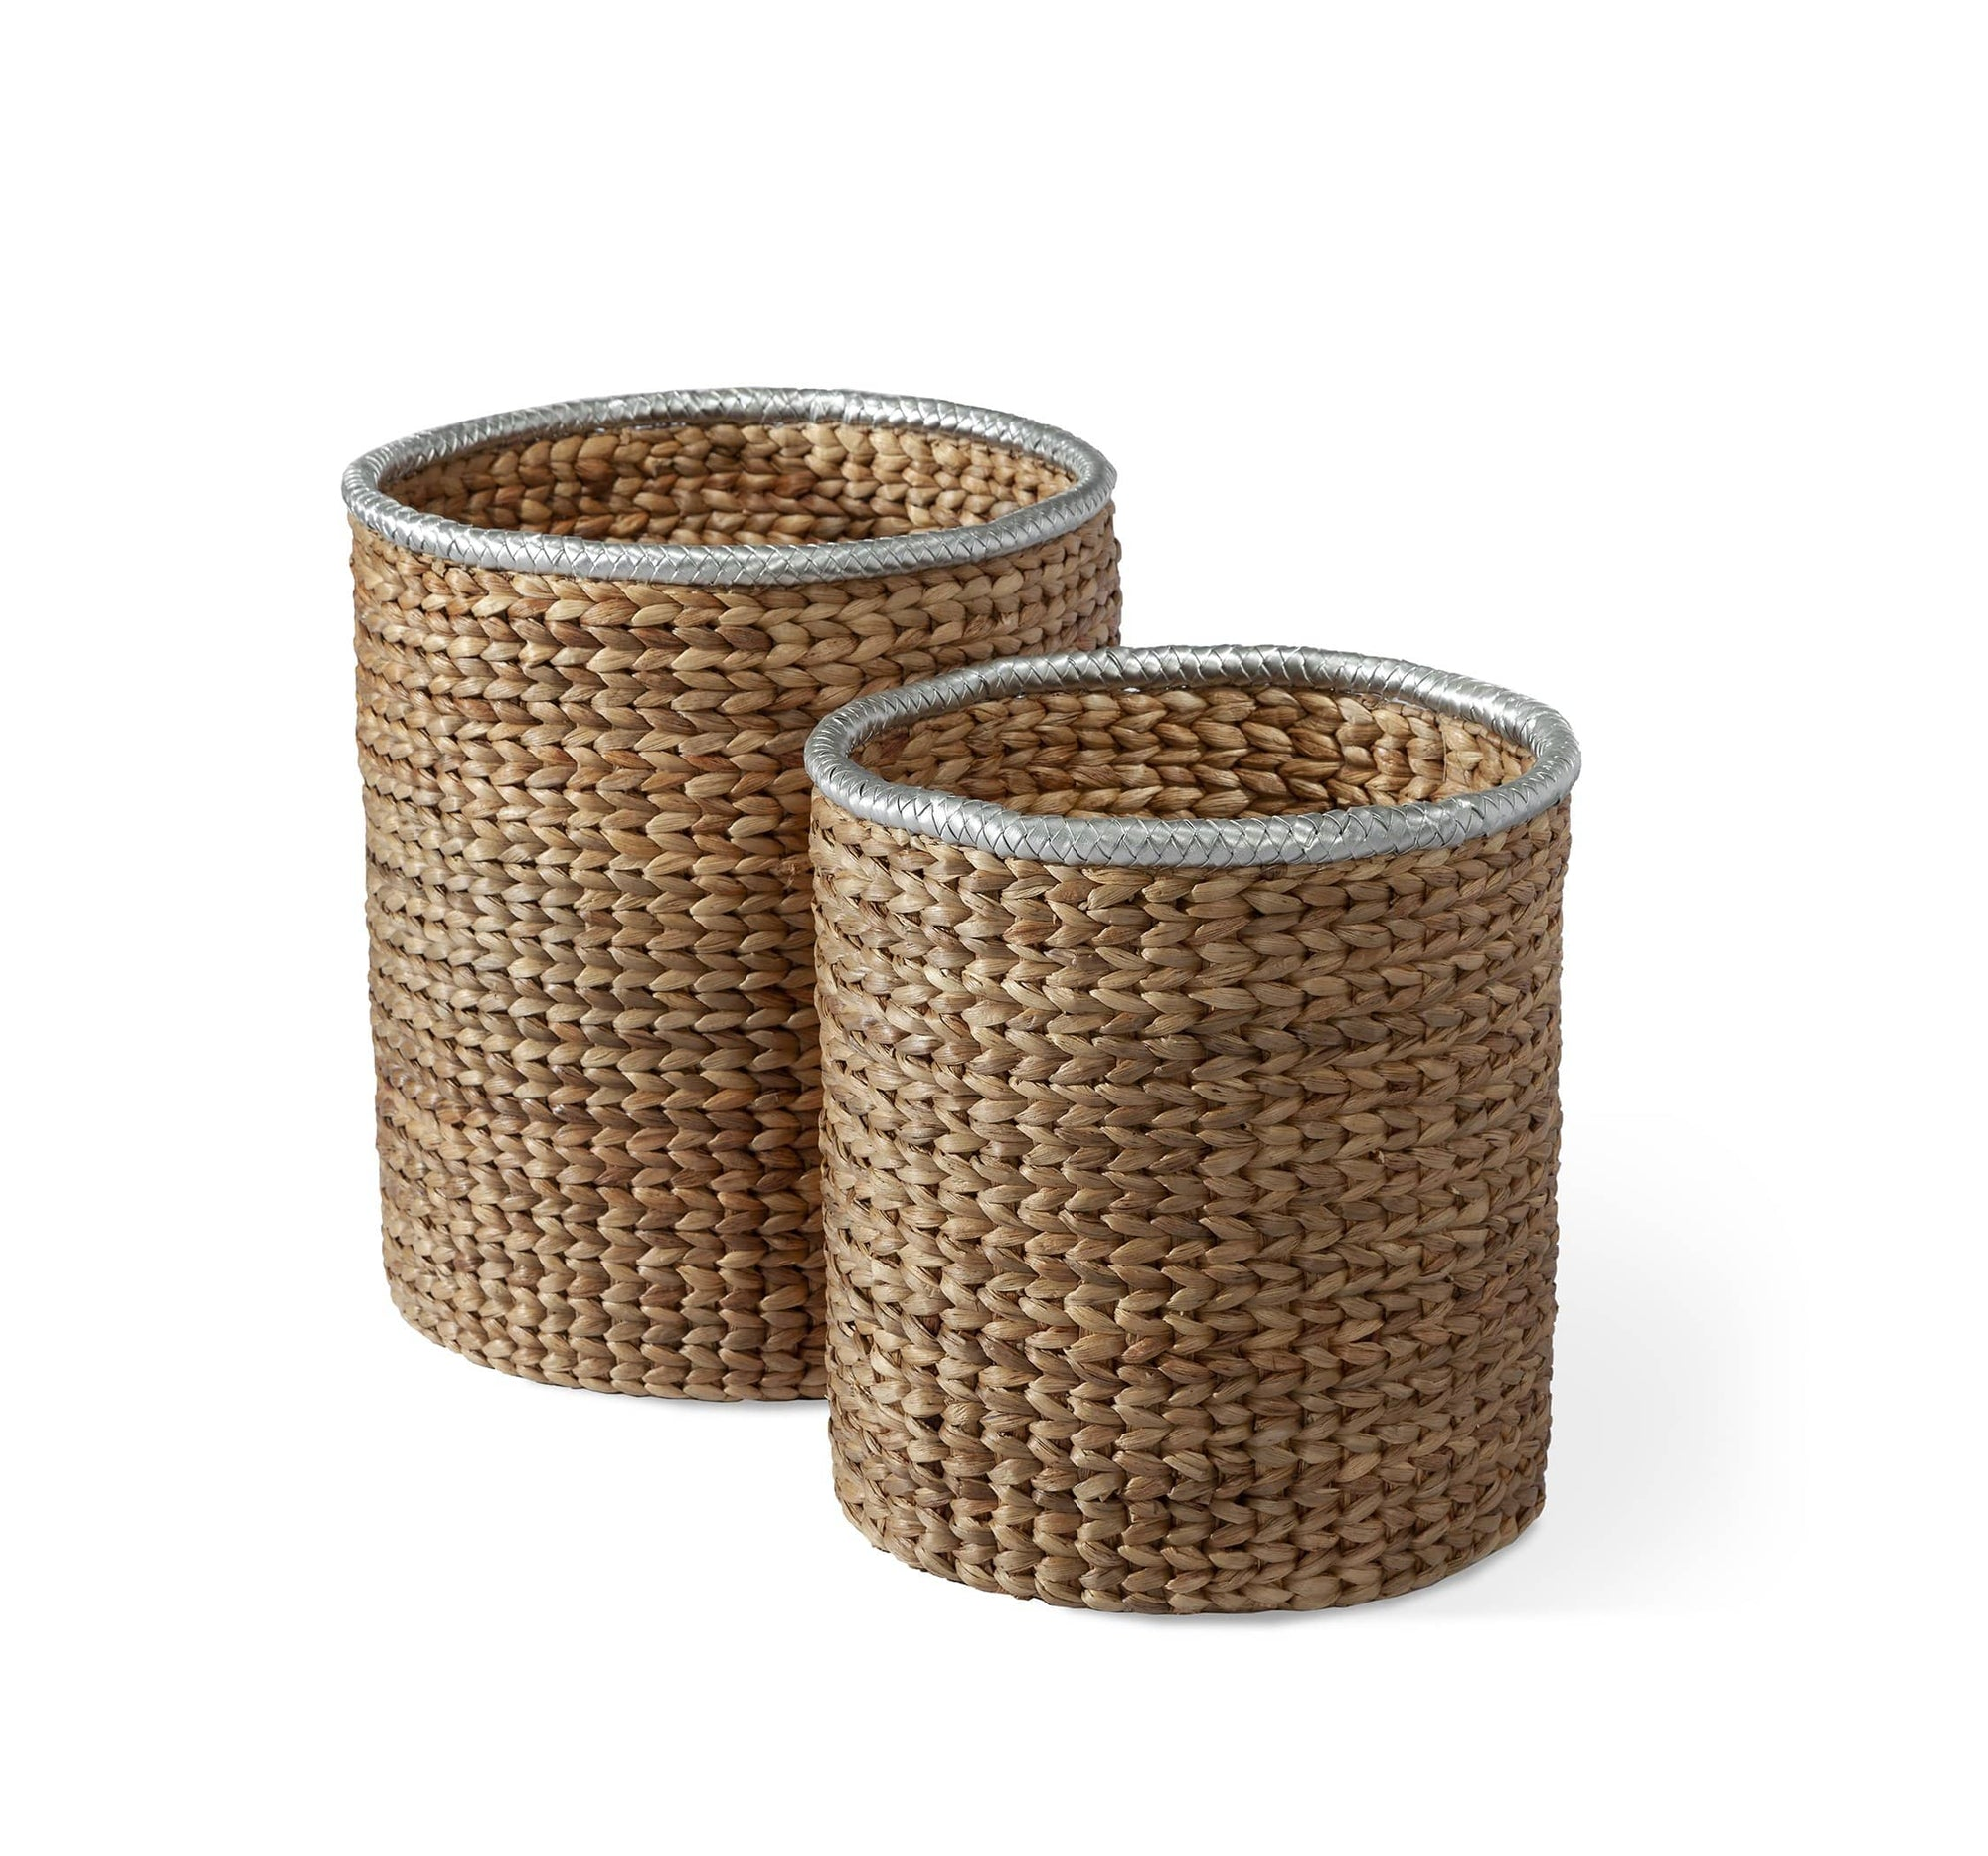 Interlude Home Interlude Home Falmouth Set of 2 Baskets - Natural & Silver 435020S2